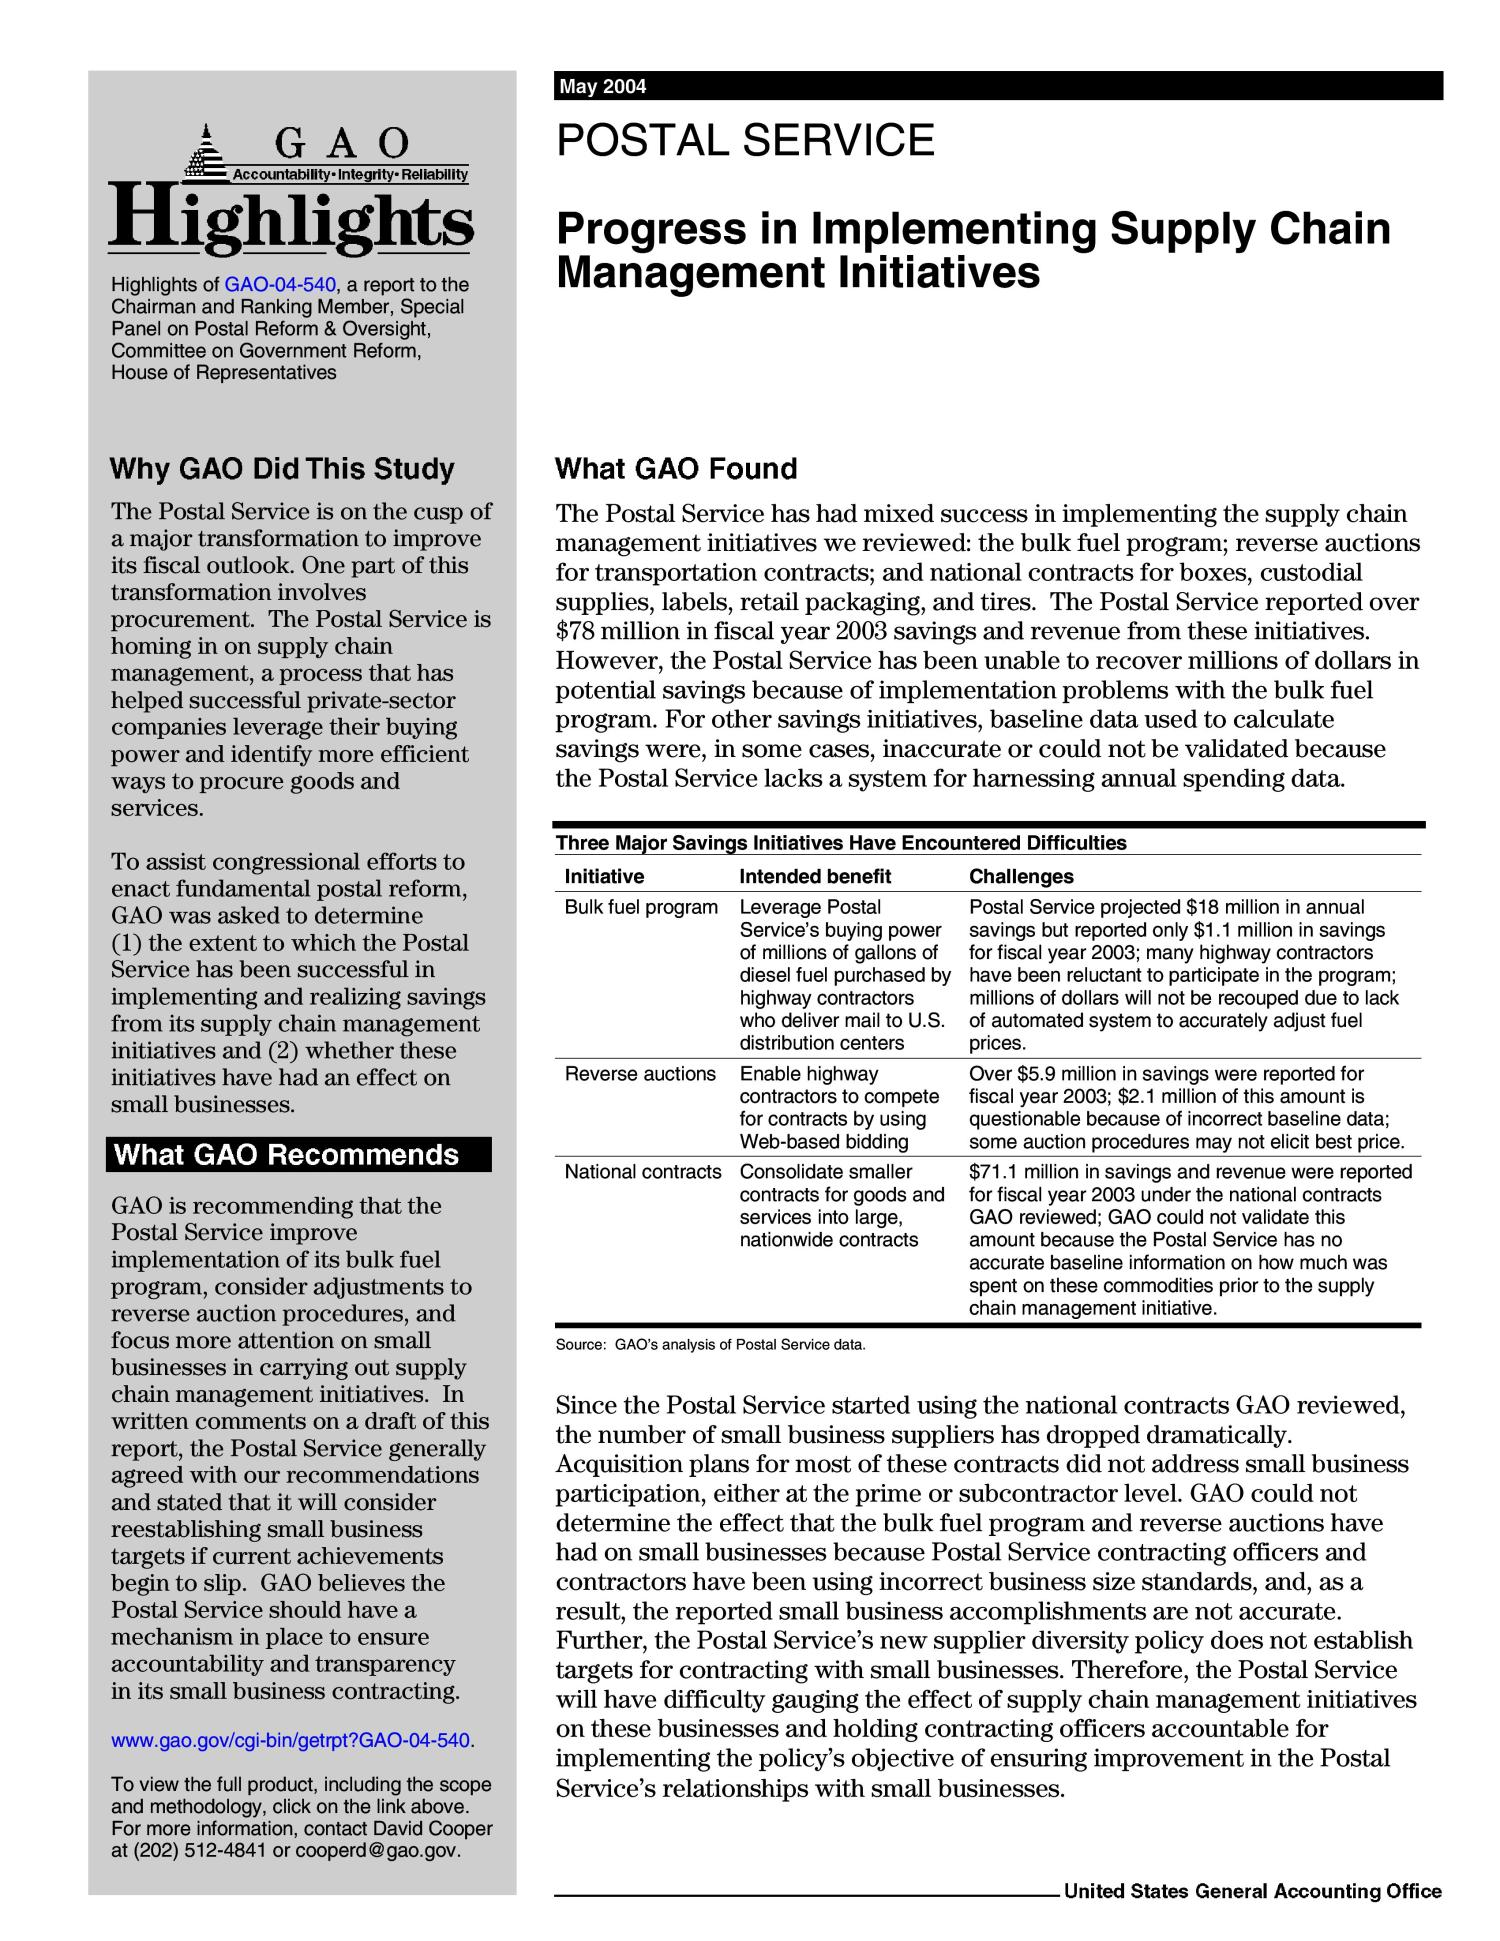 Postal Service: Progress in Implementing Supply Chain Management Initiatives                                                                                                      [Sequence #]: 2 of 31